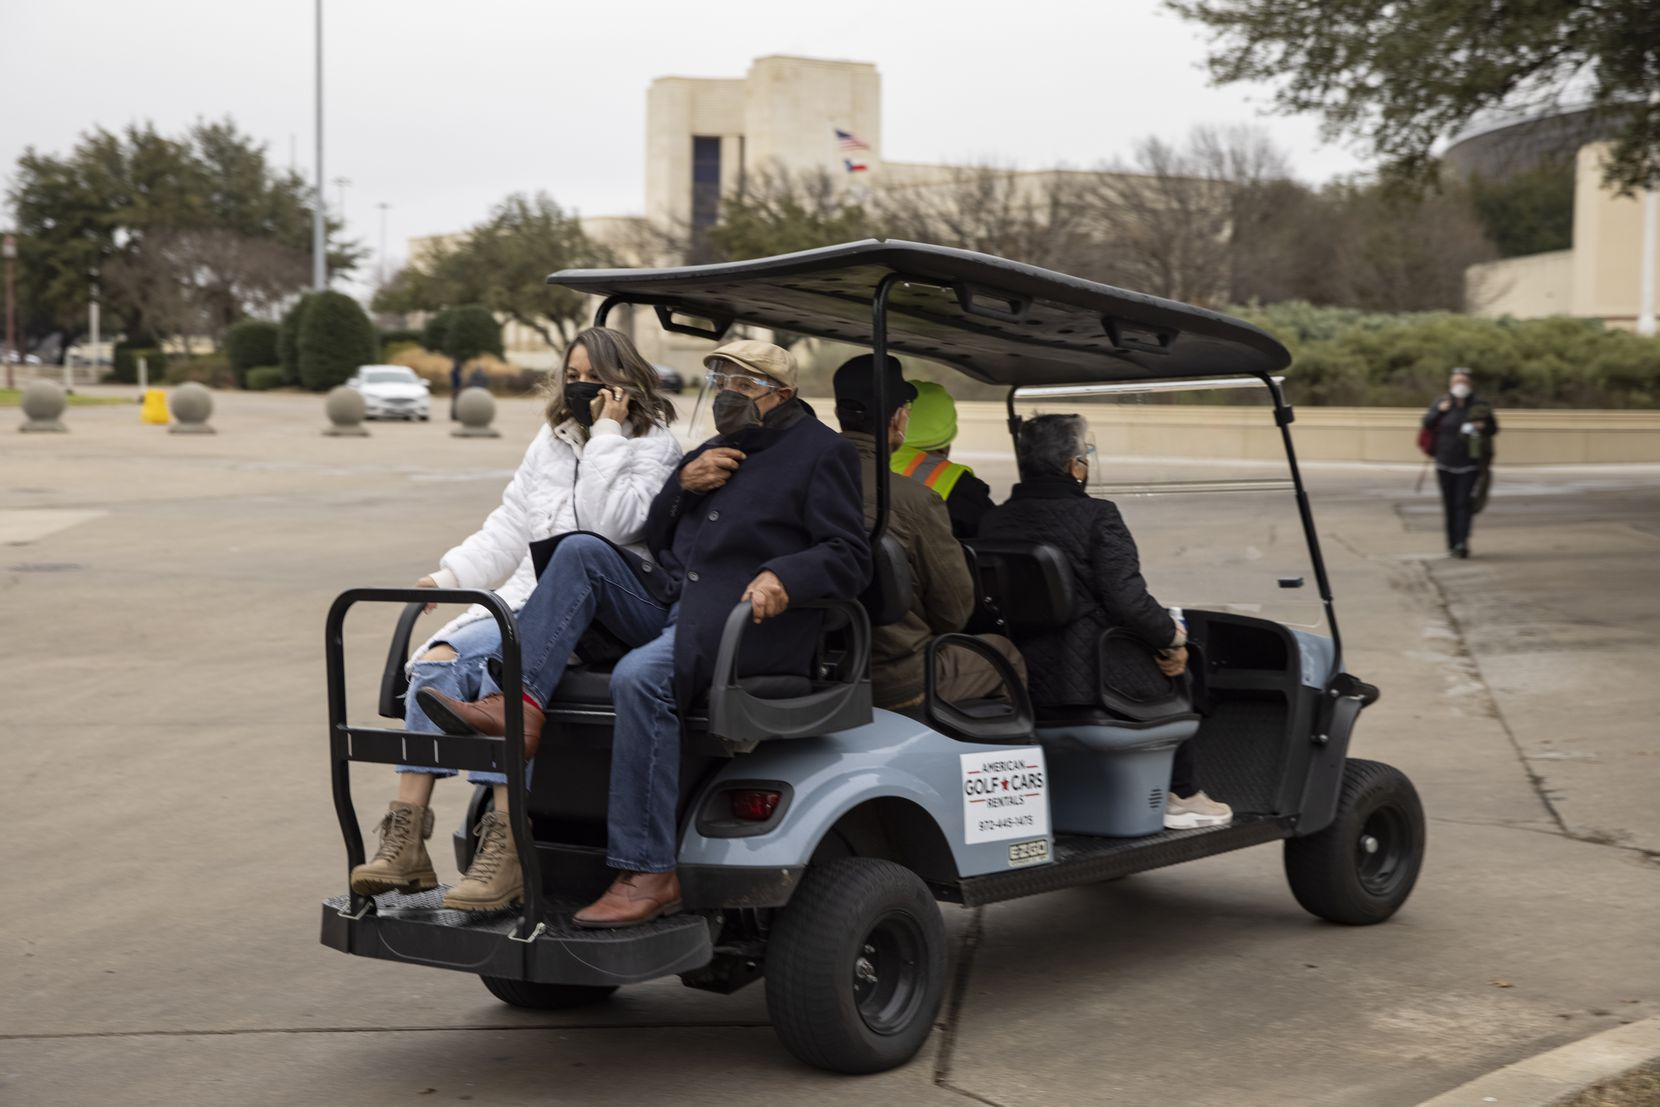 A cart takes people to get vaccines at Fair Park in Dallas on Tuesday, Feb. 9, 2021. (Juan Figueroa/ The Dallas Morning News)